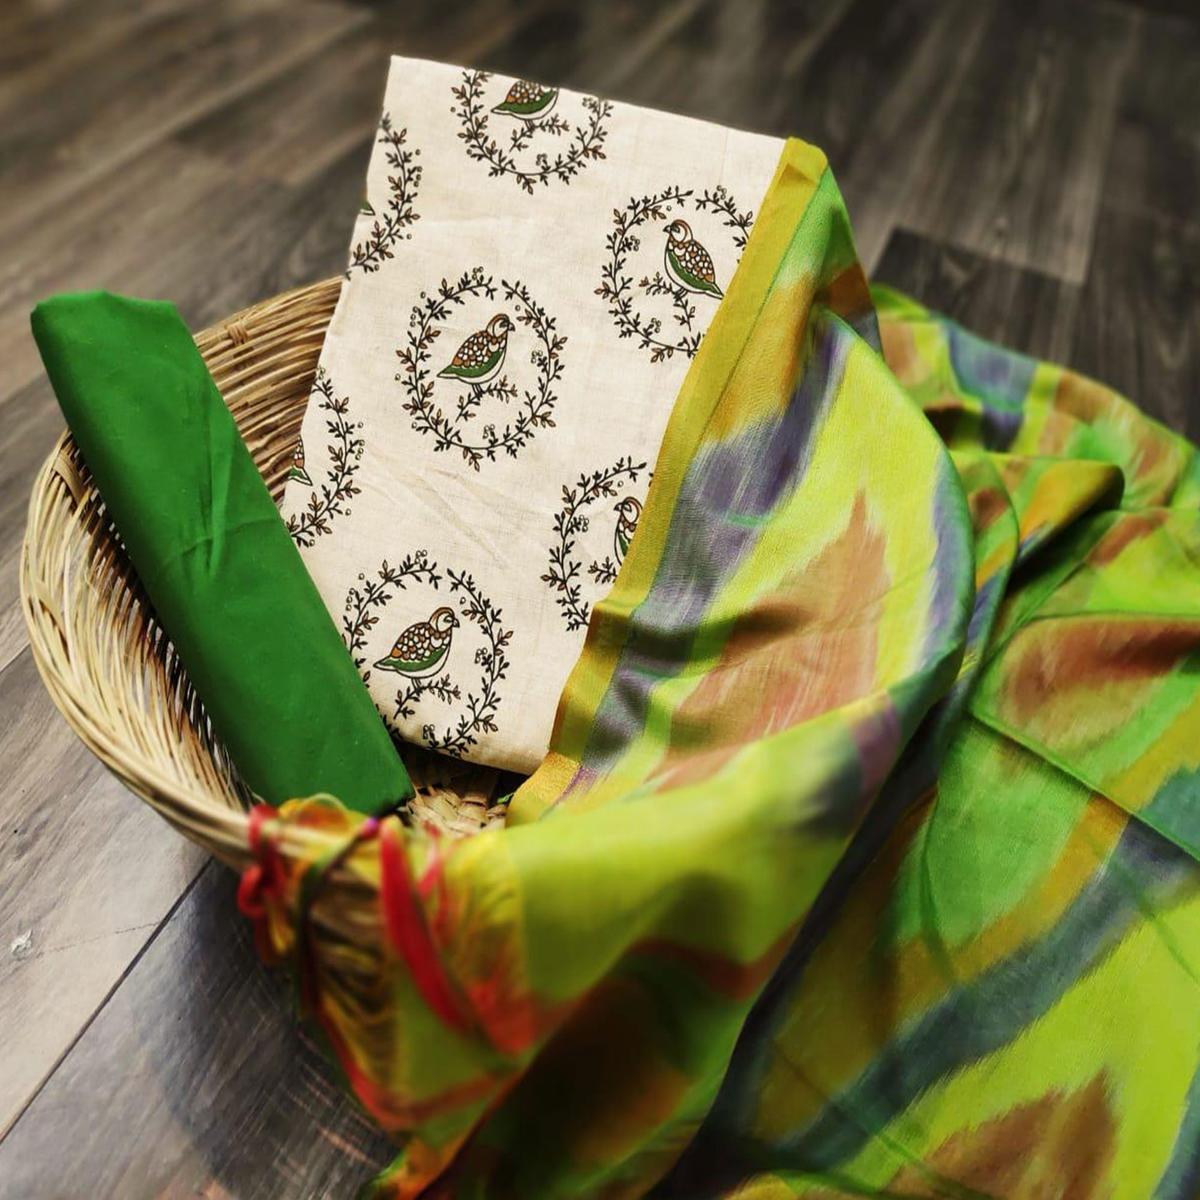 Engrossing Beige-Green Colored Party Wear Printed Cotton Dress Material